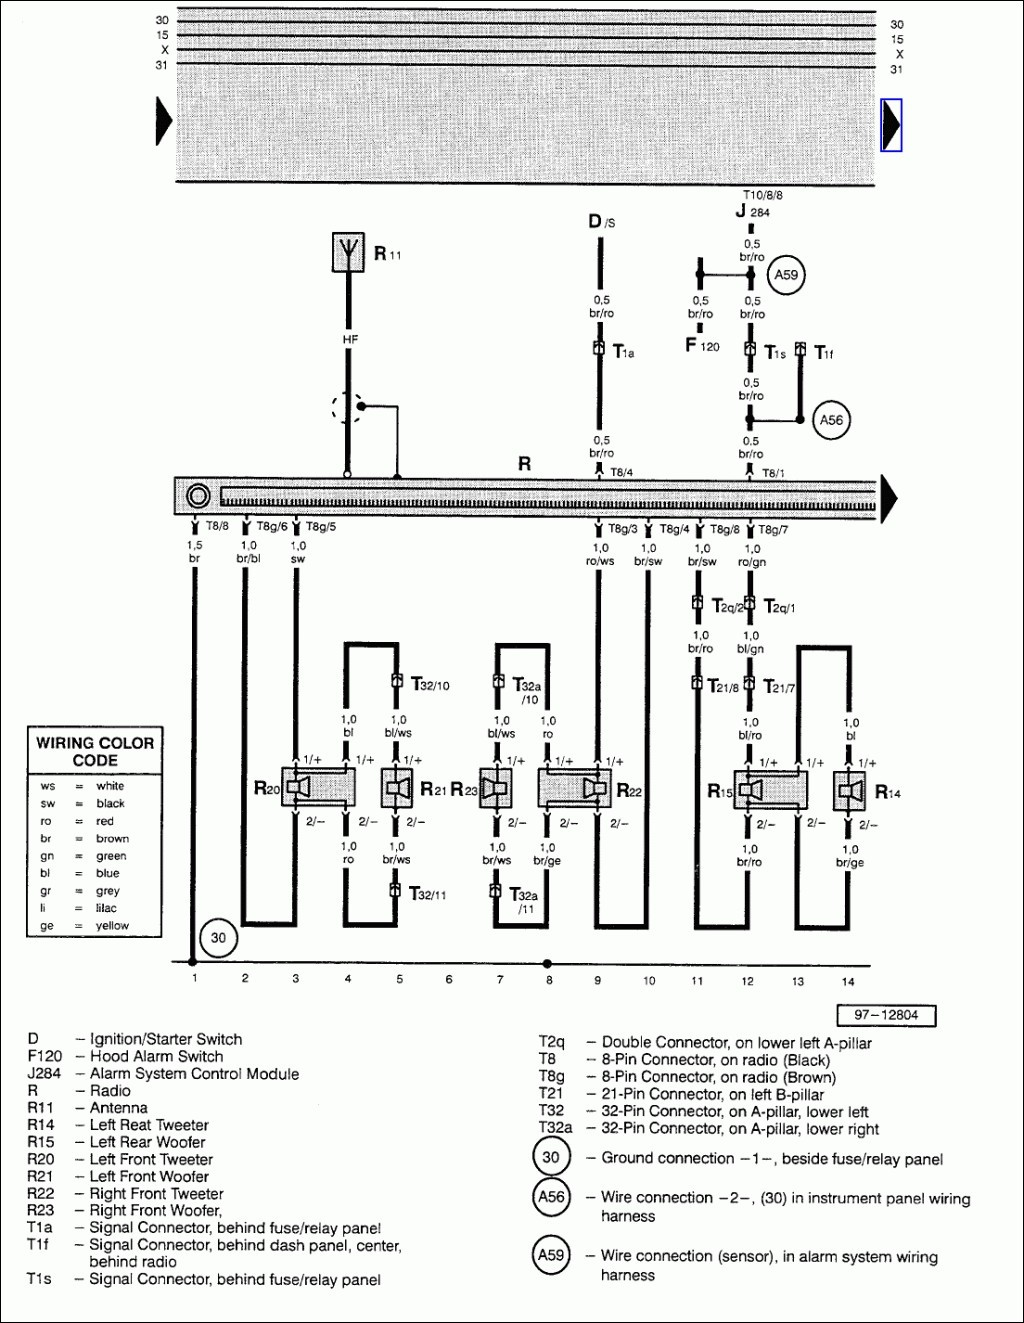 2014 Vw Jetta Wire Harness - Answer Wiring Diagrams slow-stable -  slow-stable.unishare.it | 2014 Vw Jetta Wire Harness |  | unishare.it